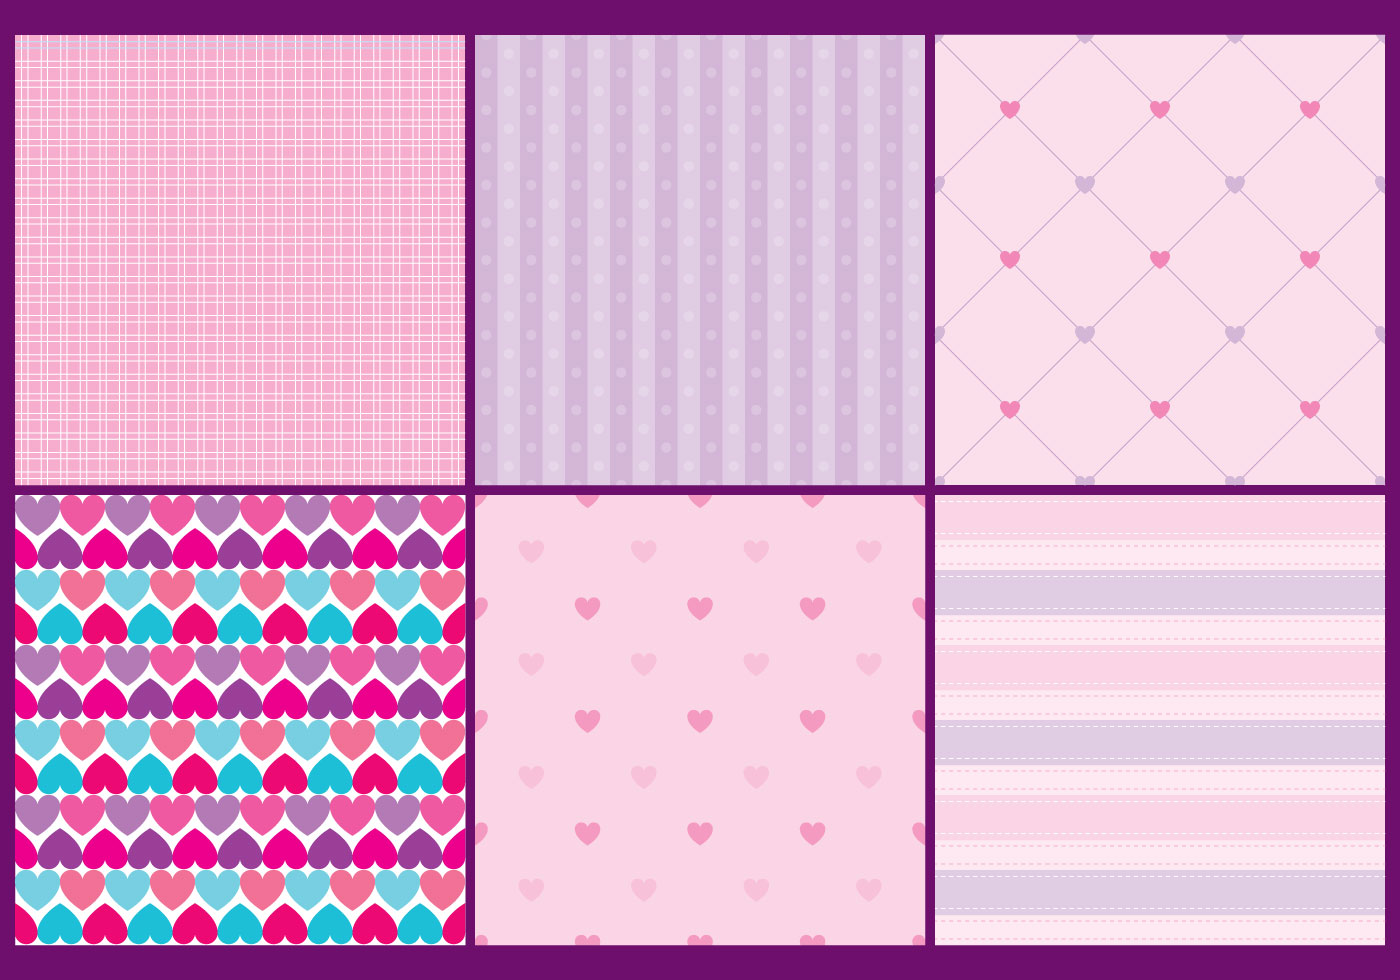 Girly Heart Patterns Download Free Vectors Clipart